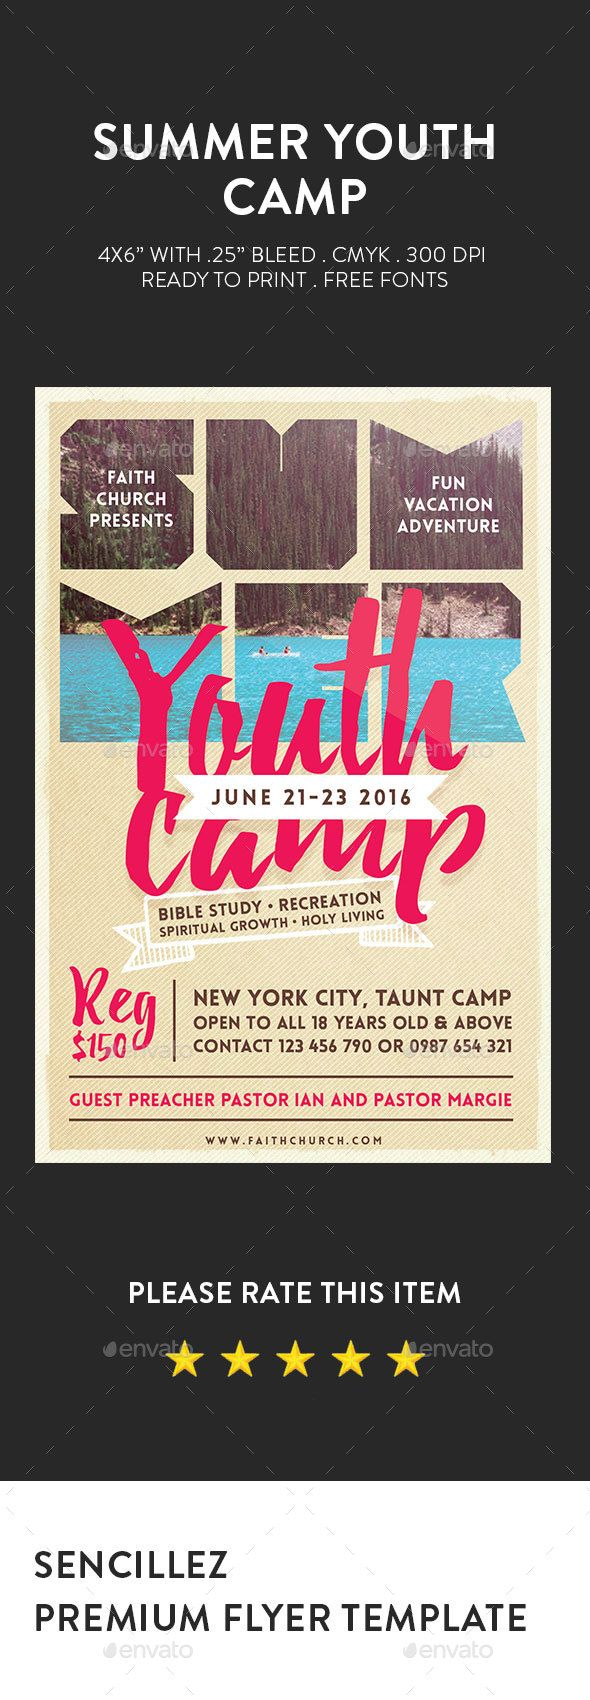 Summer Youth Camp Flyer | Summer youth, Youth camp and Youth